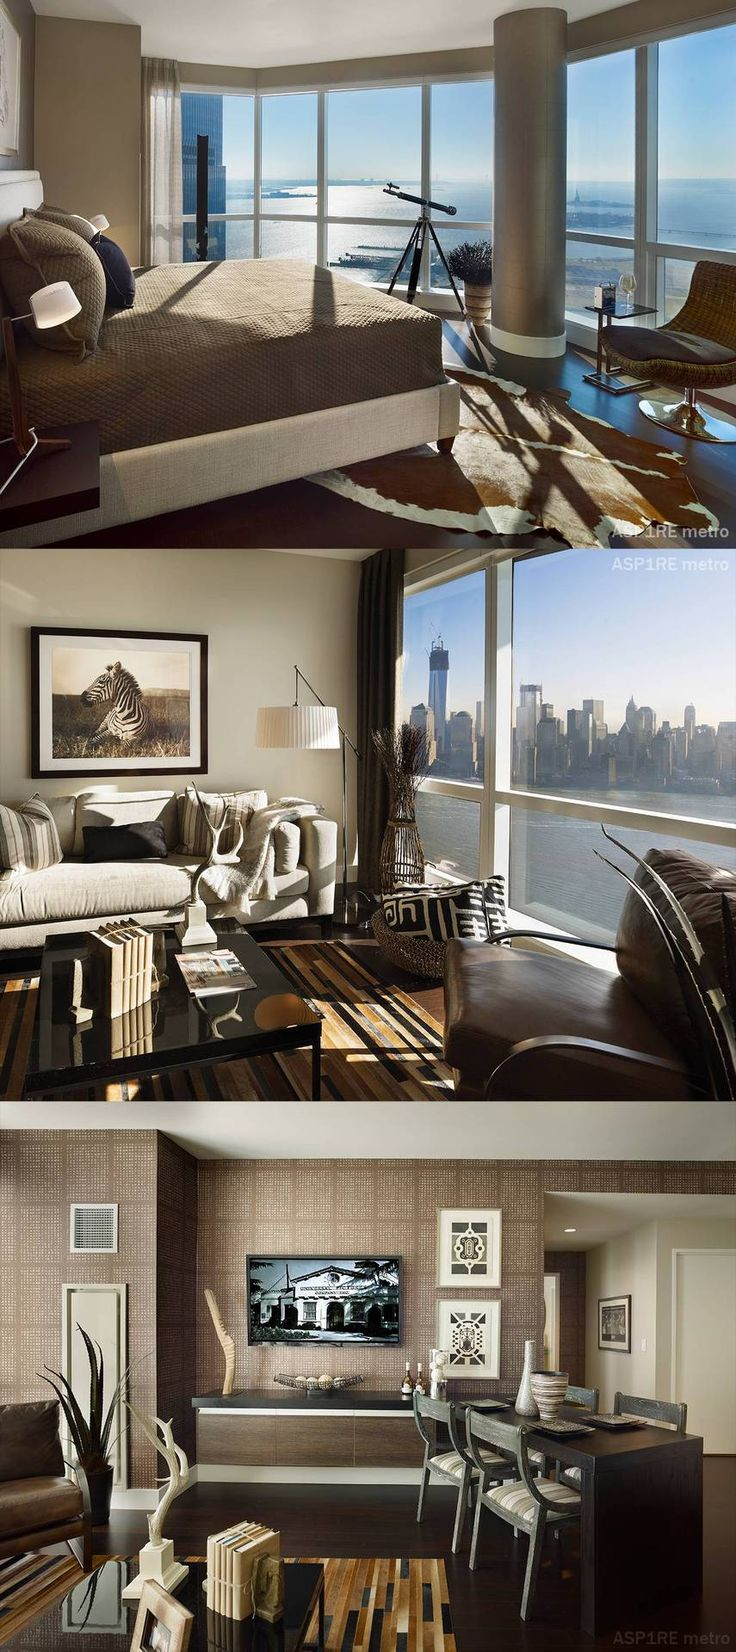 186 best Penthouse images on Pinterest | Architecture, New york ...